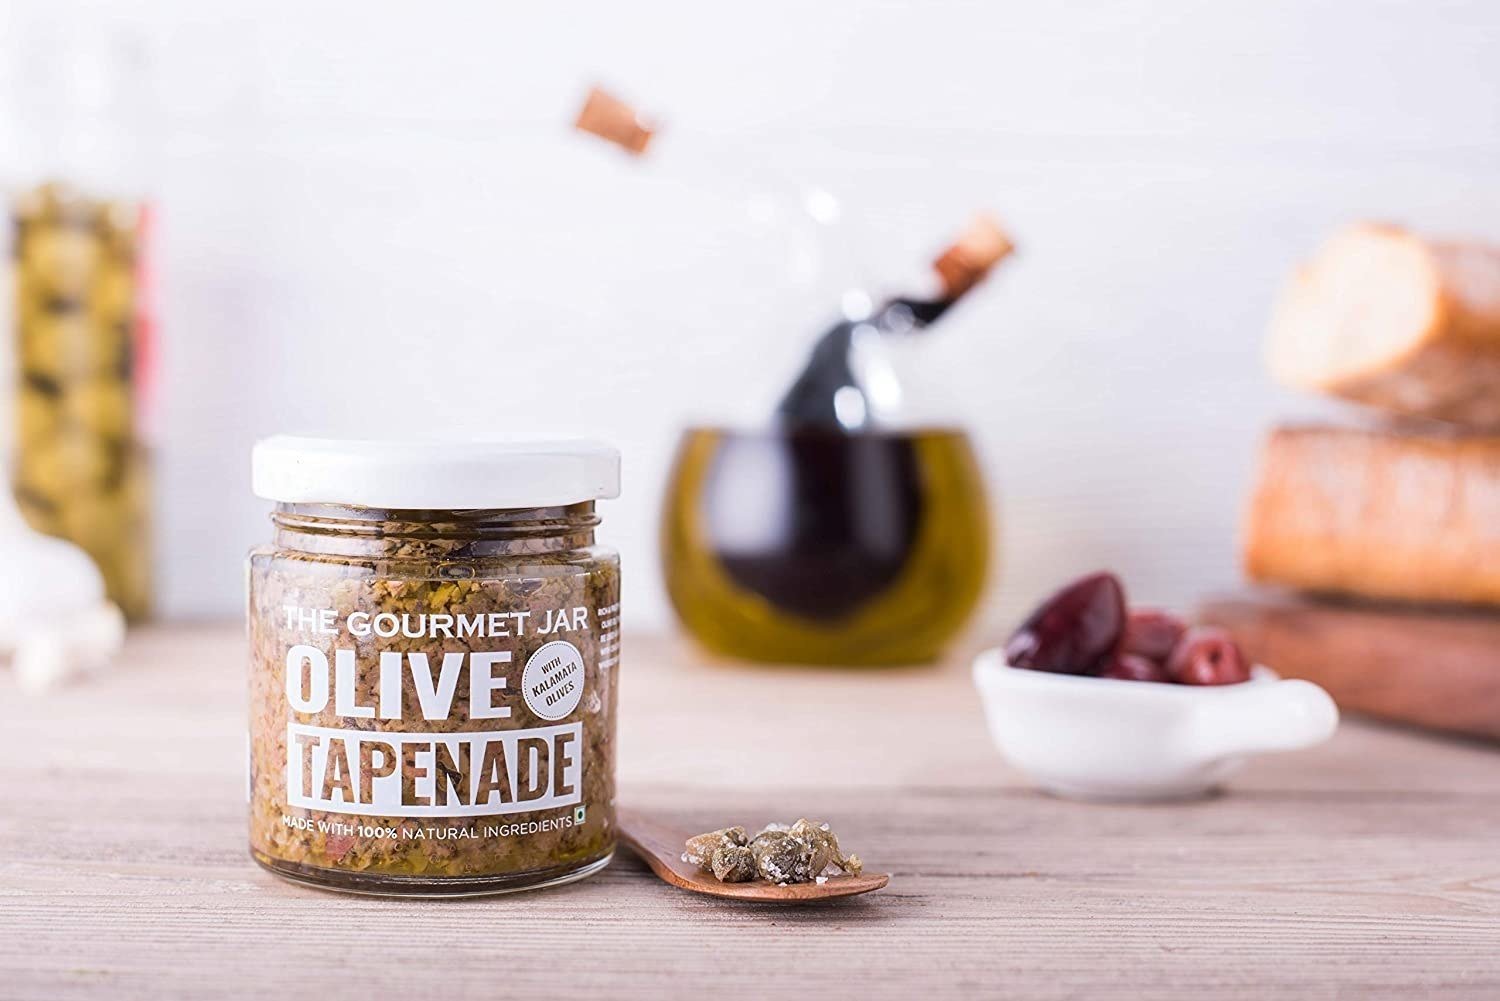 Packaging of the olive tapenade